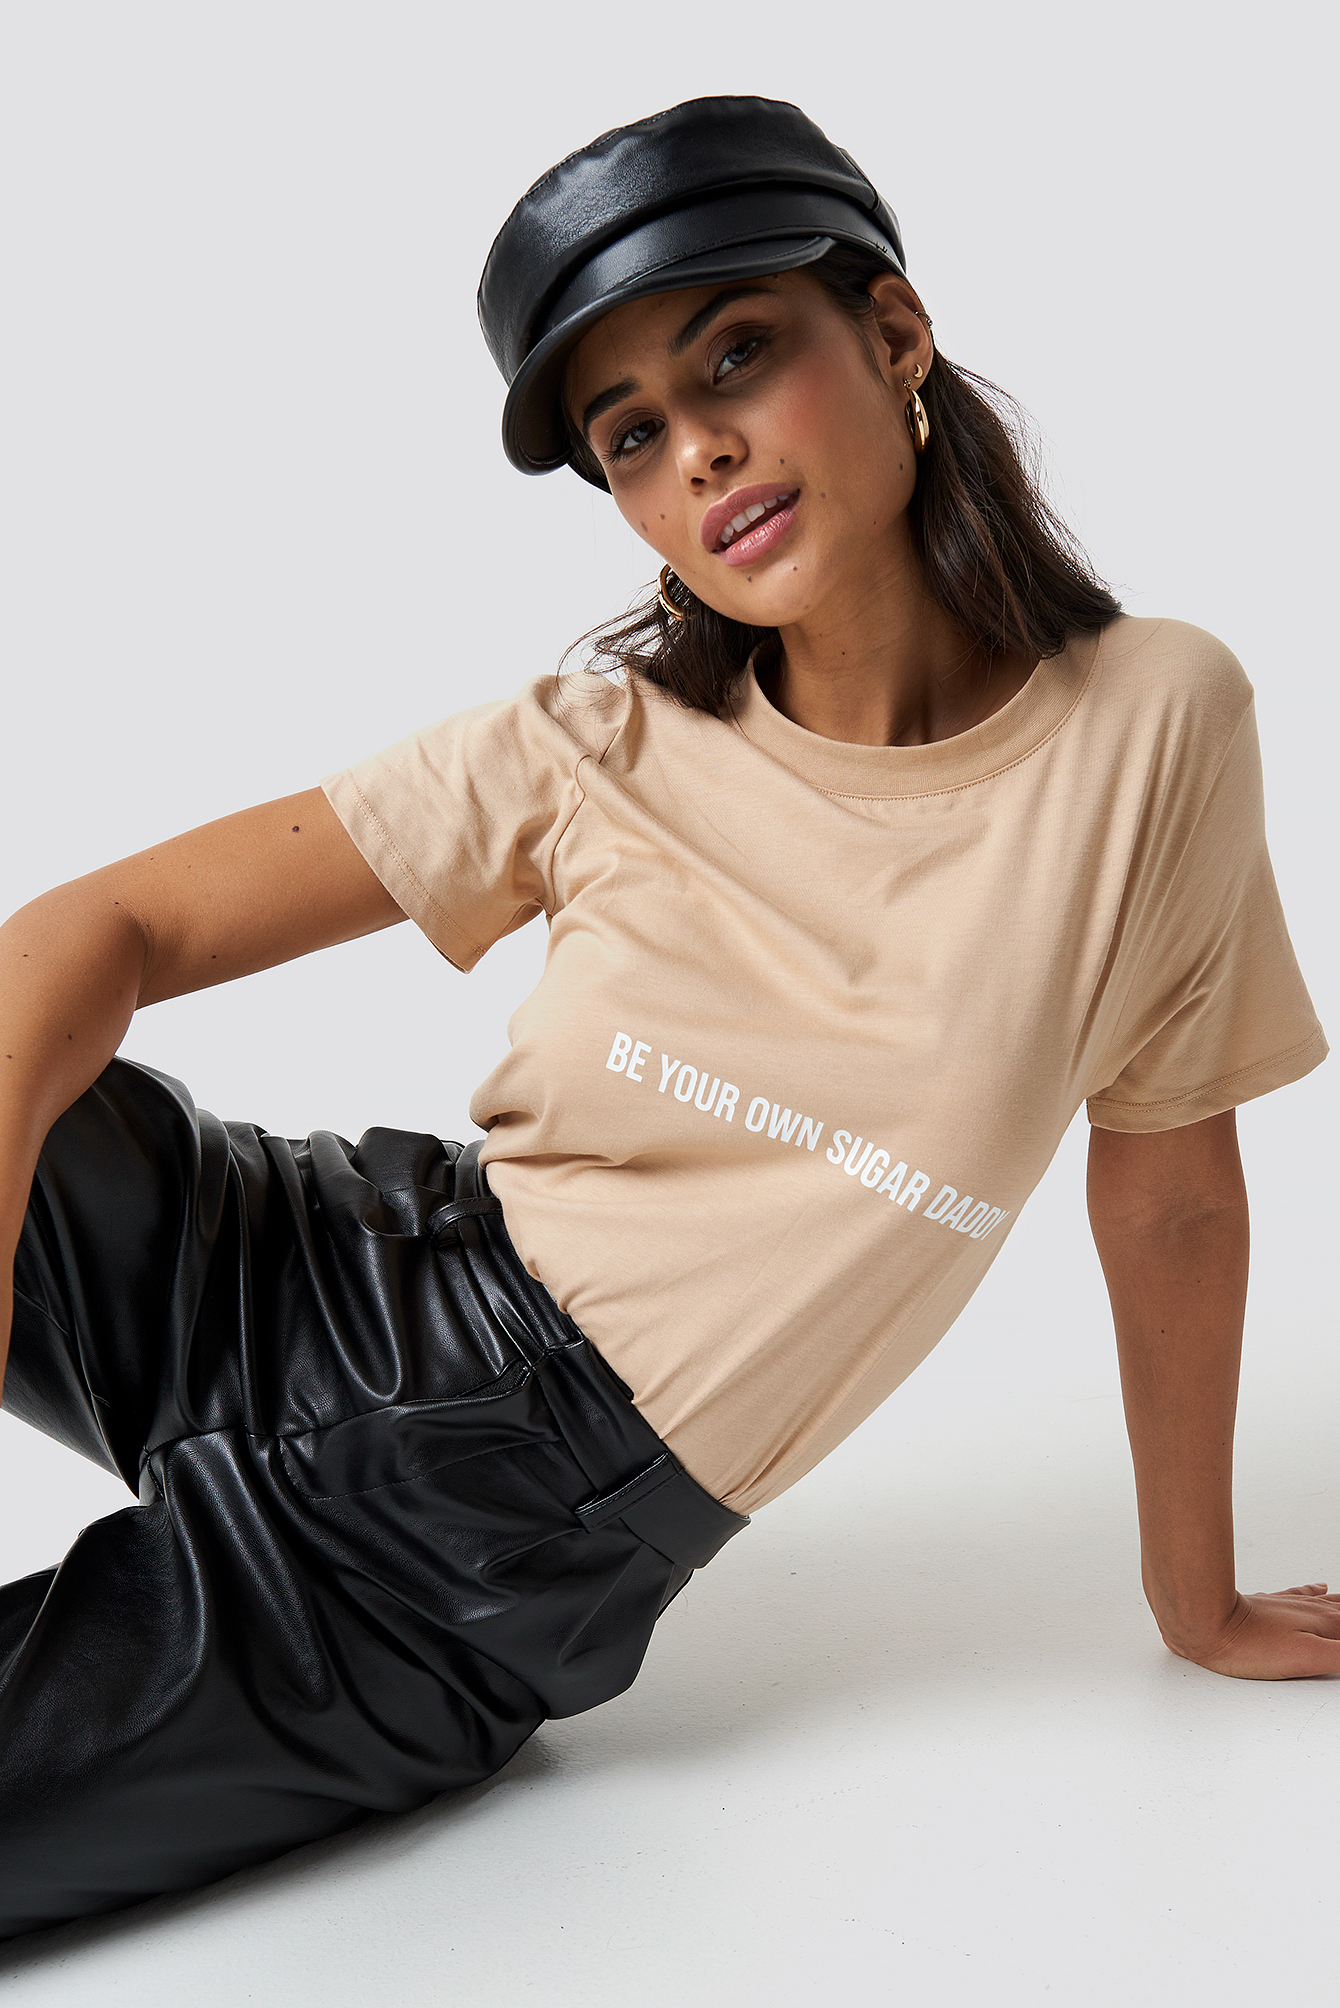 CHLOEXNAKD Be Your Own Sugar Daddy Tee - Beige